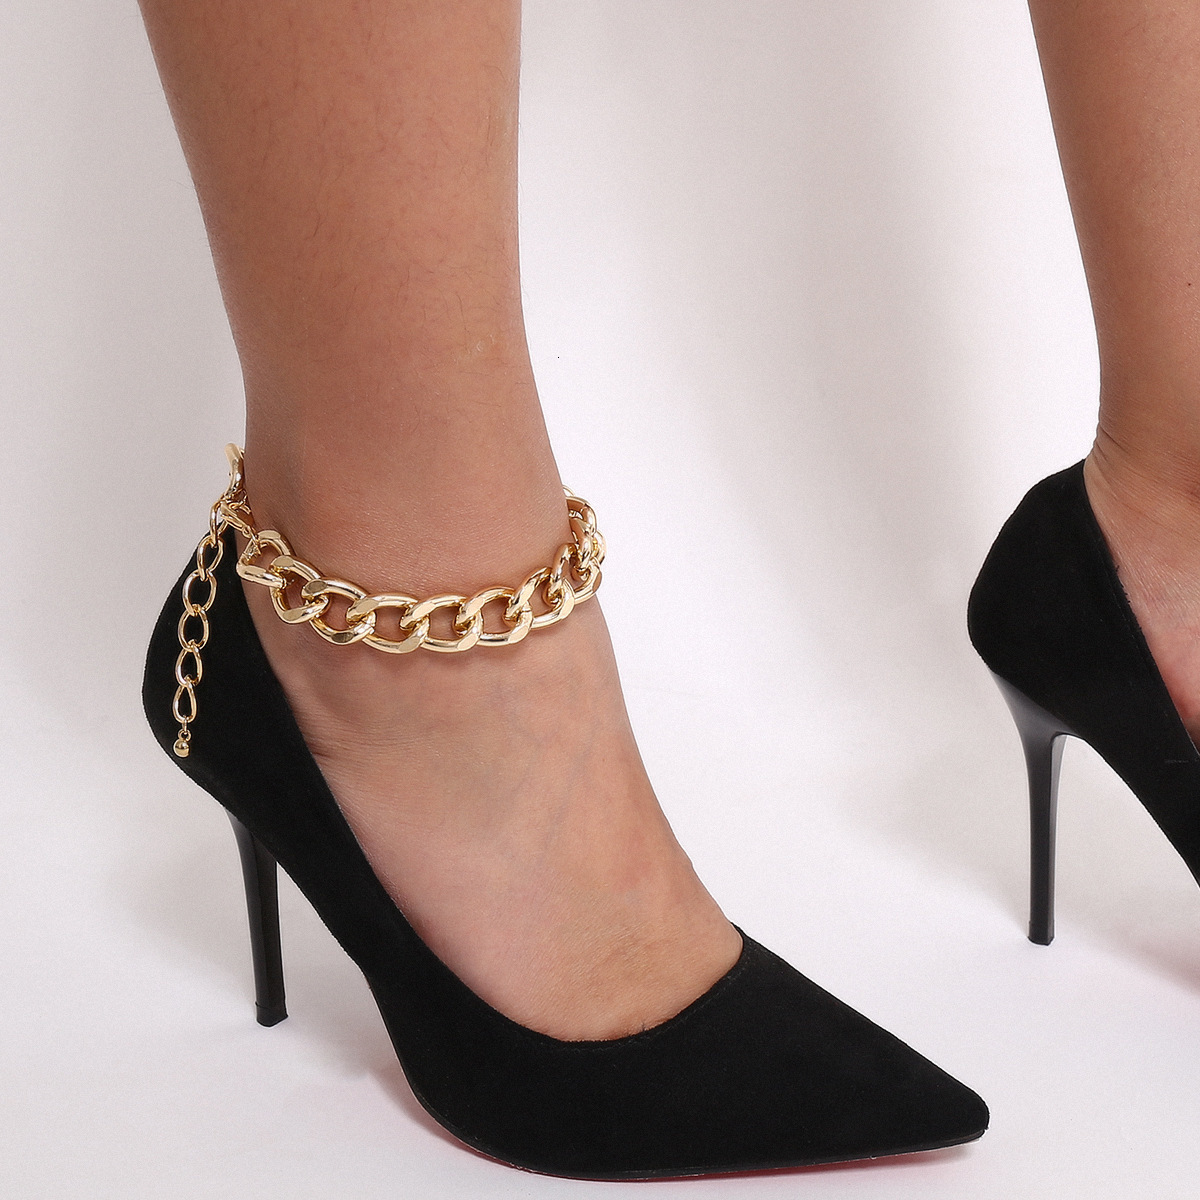 Youvanic Punk Gold Thick Anklet Cuban Link Chain Anklets For Women Sexy Chunky Ankle Bracelet Leg Chain Beach Foot Jewelry 0596